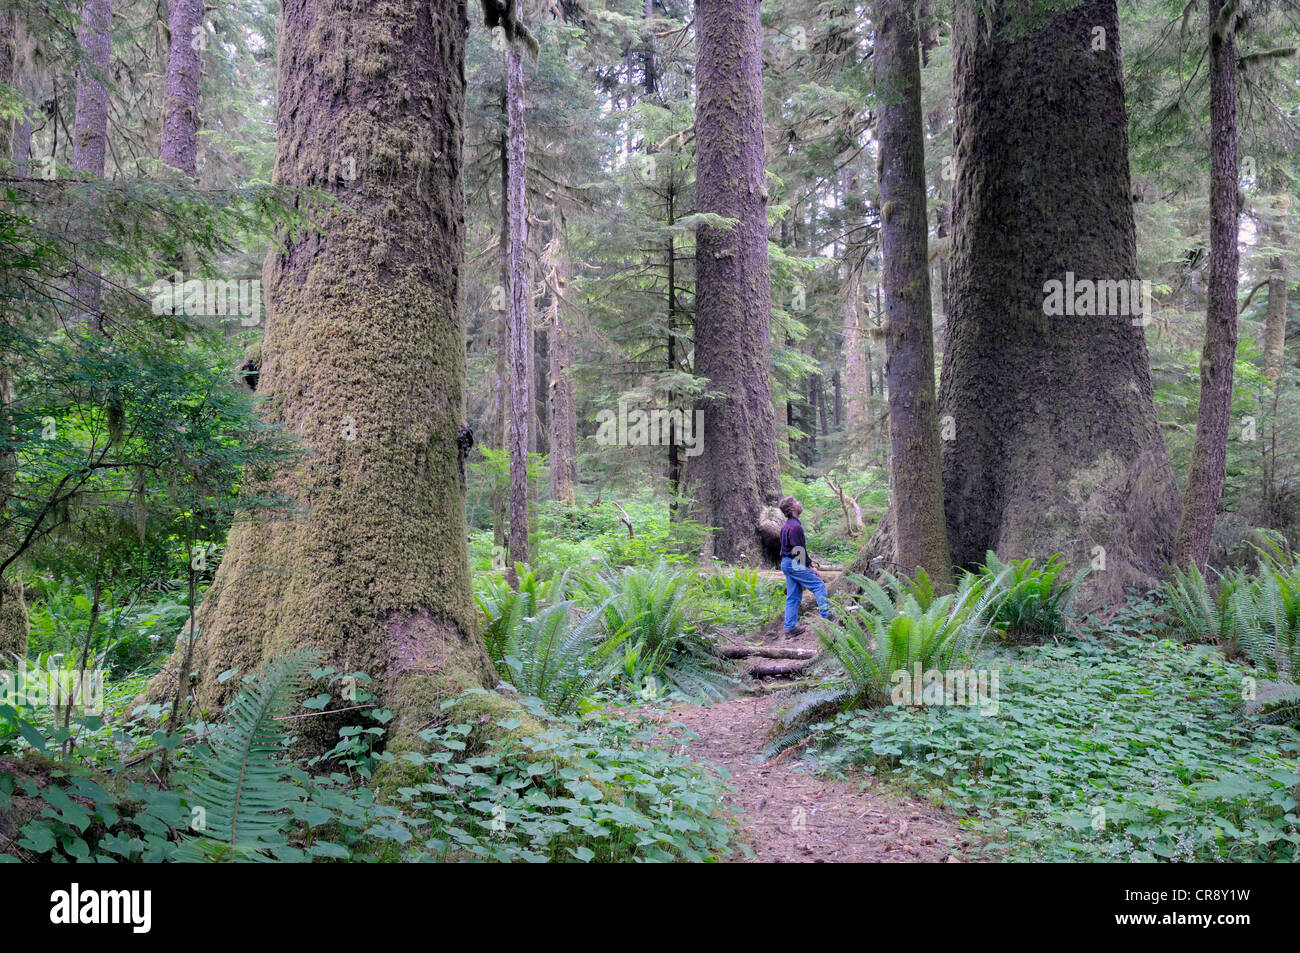 Randy Stoltmann Commemorative Grove, Sitka Spruce trees, Carmanah Walbran Provincial Park, British Columbia, Canada Stock Photo